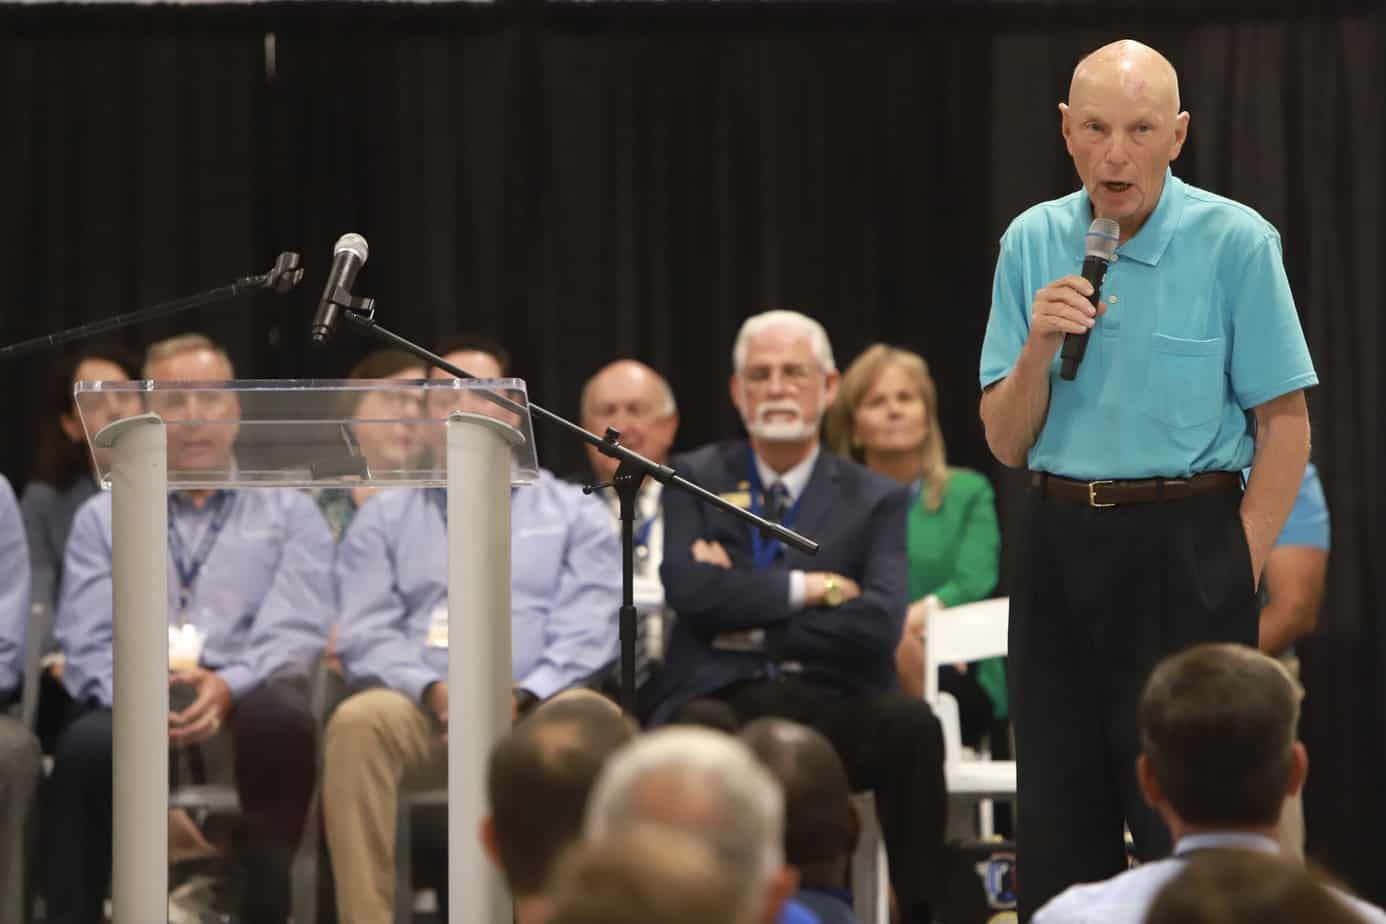 Astronaut Story Musgrave speaking at Astro Pak Open House